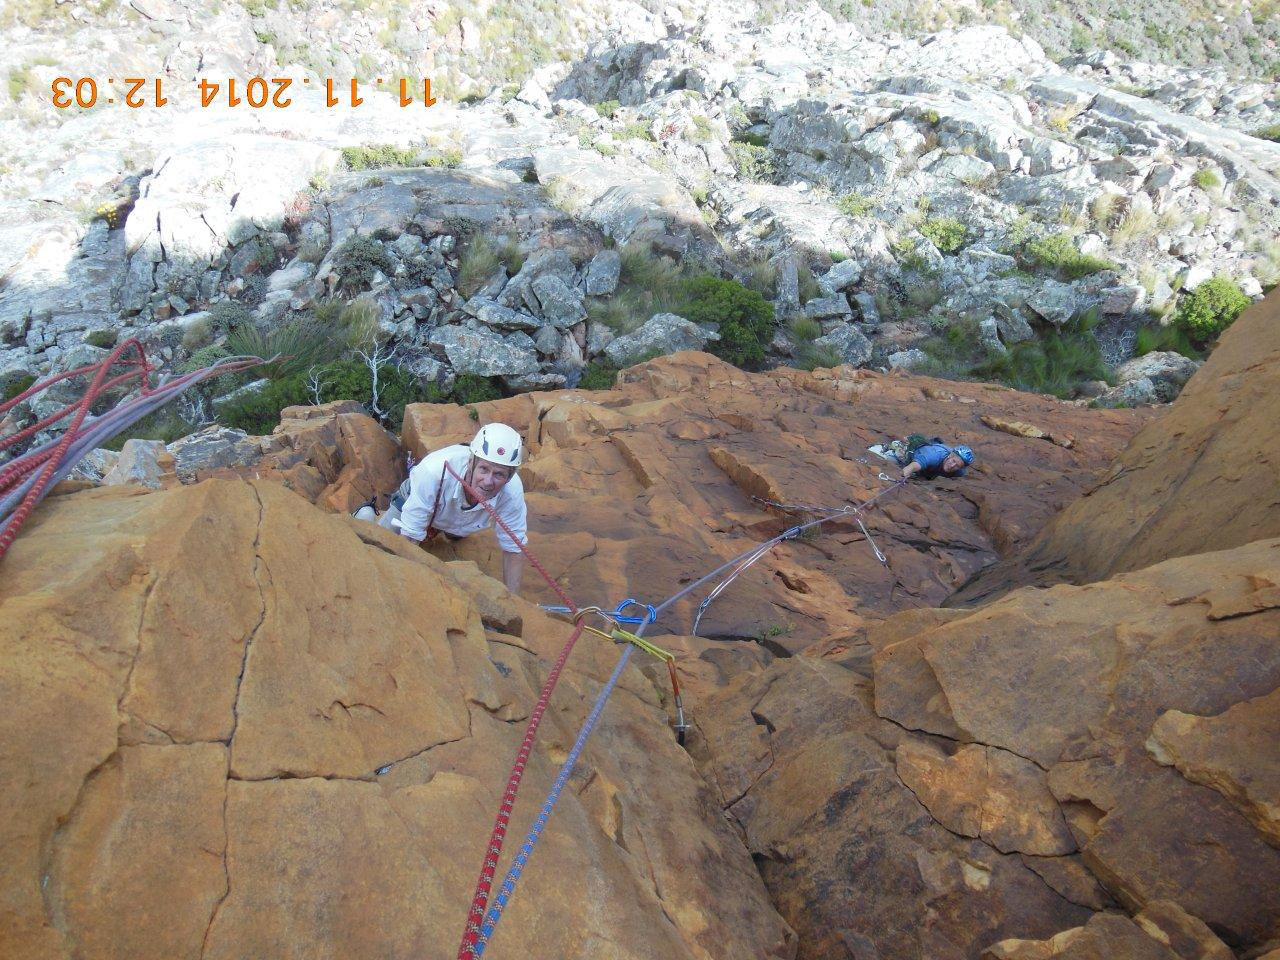 Tony Dick climbing pitch 3 of Masquerade, with Bruce following